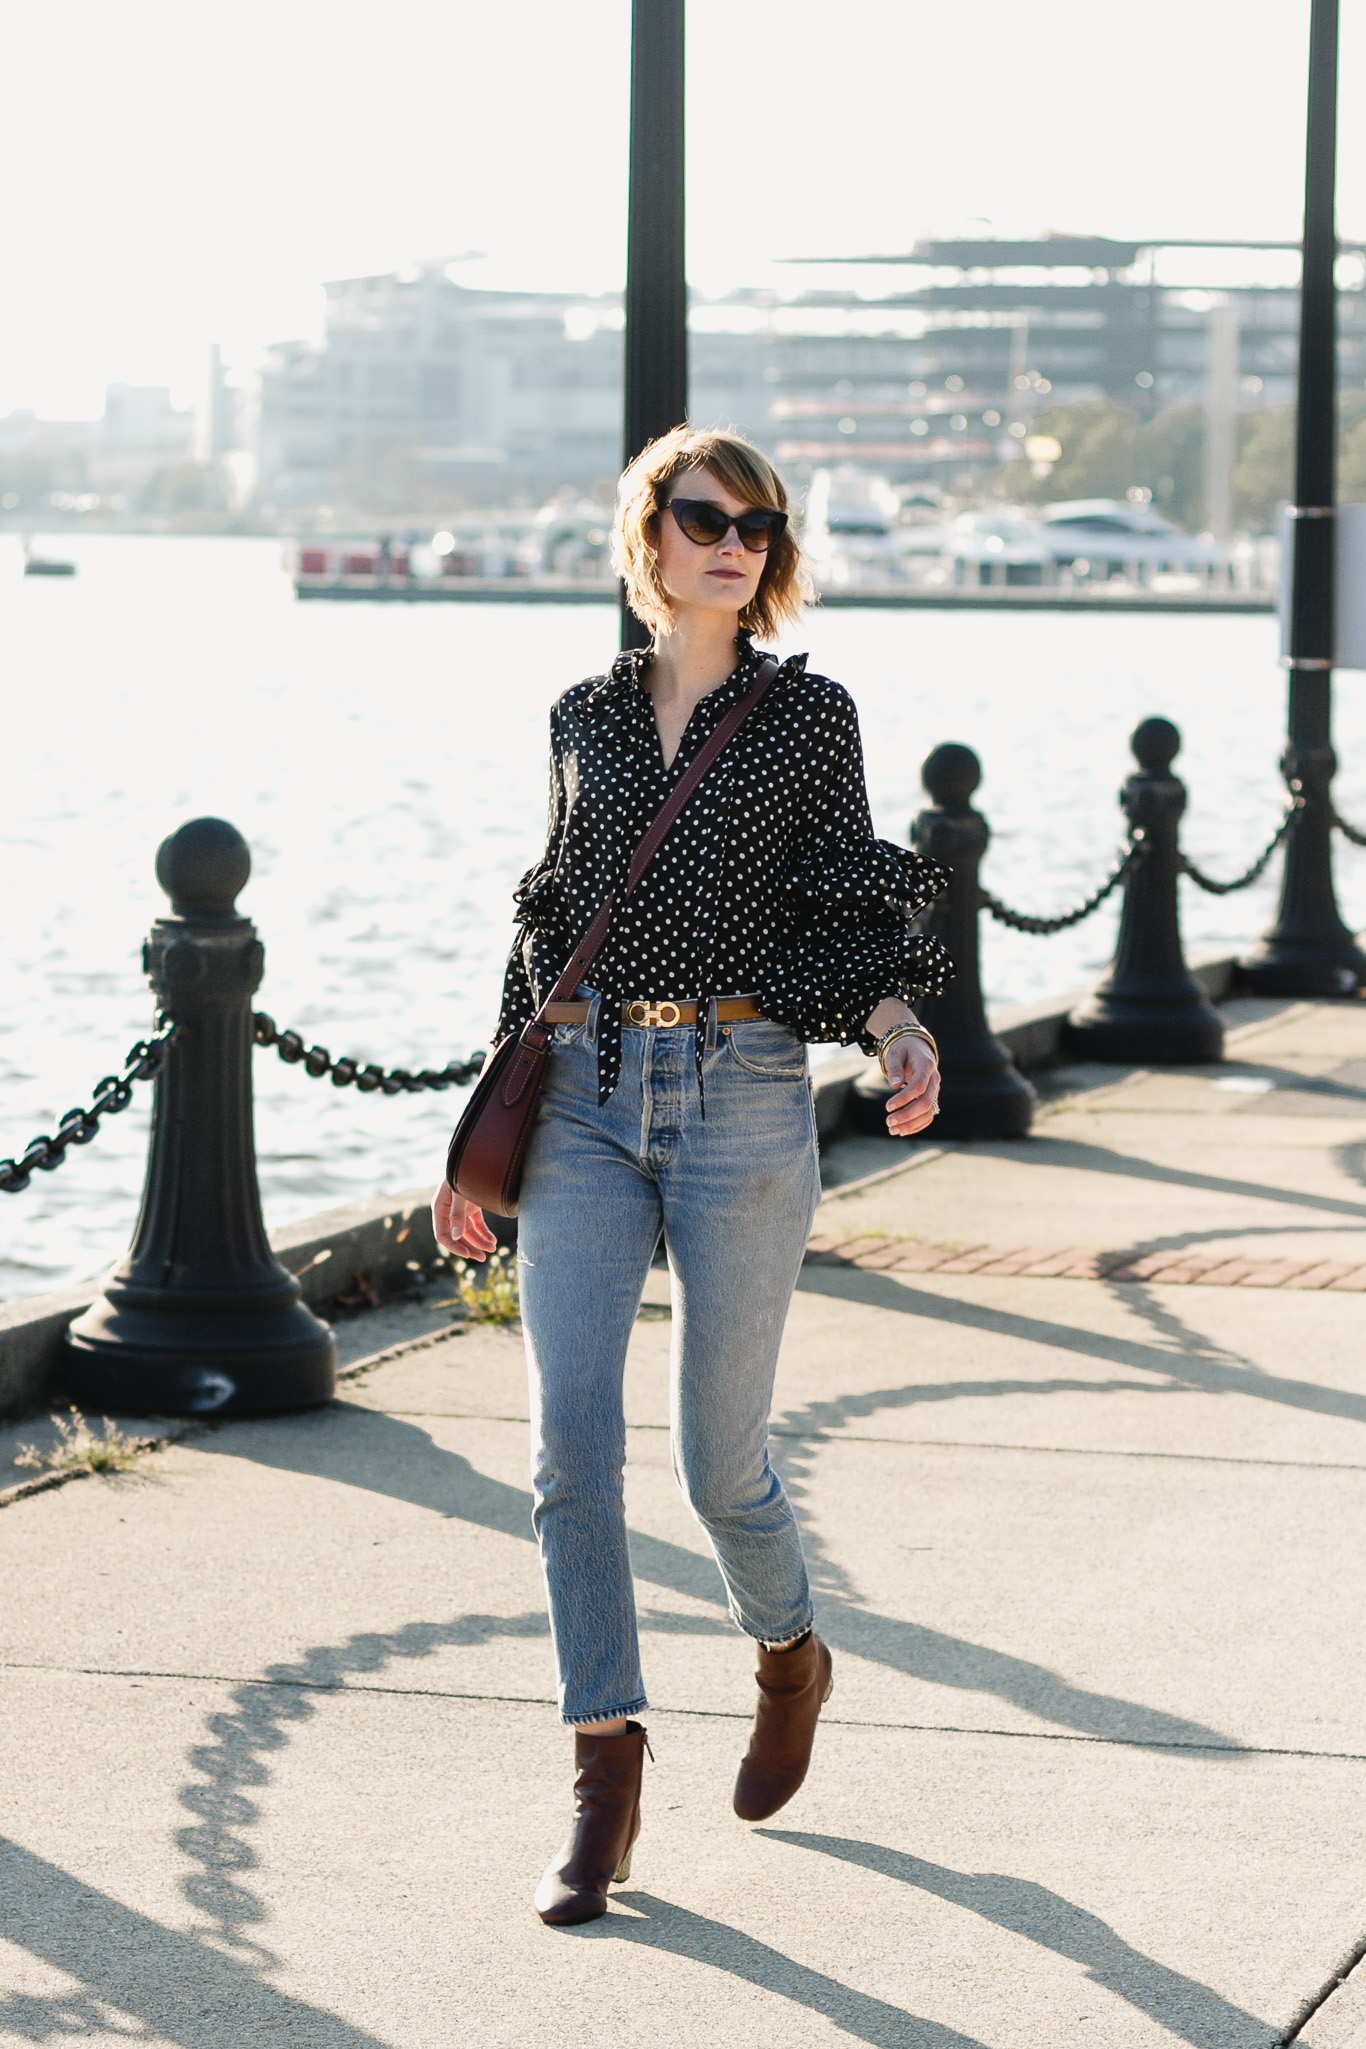 ruffled polka dot top, Ferragamo belt, and Re/Done jeans